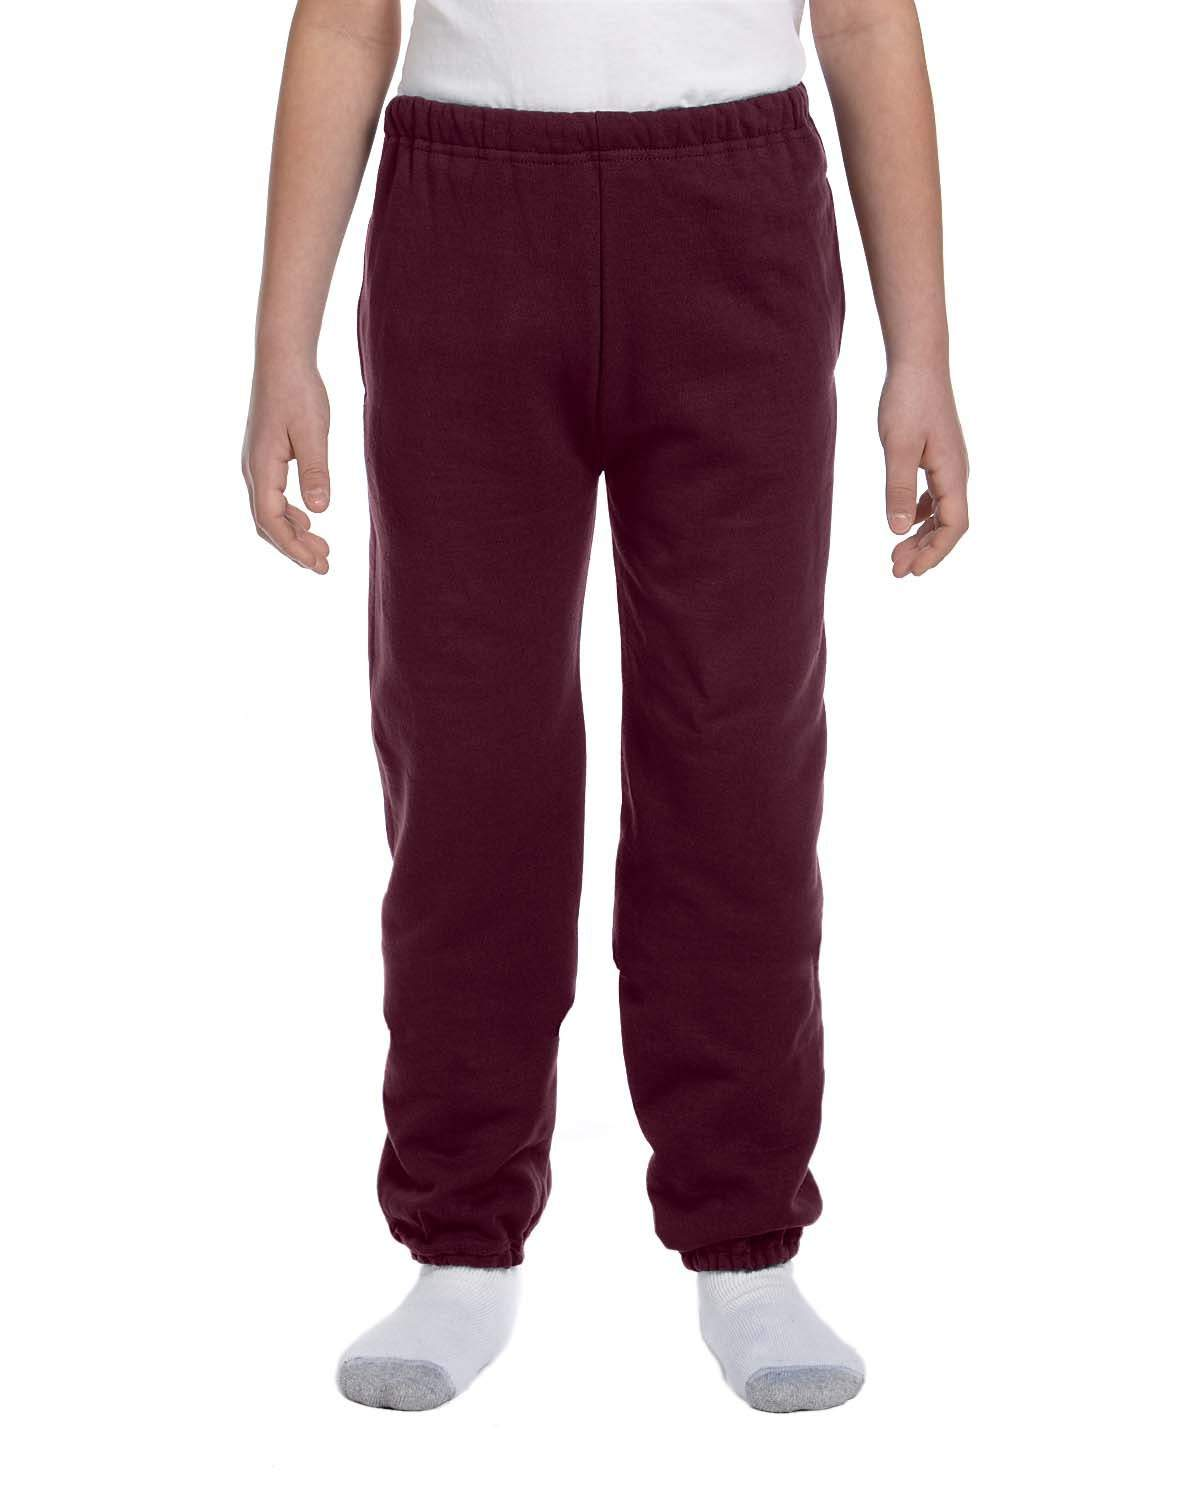 Youth 9.5 oz. Super Sweats NuBlend Fleece Pocketed Sweatpants